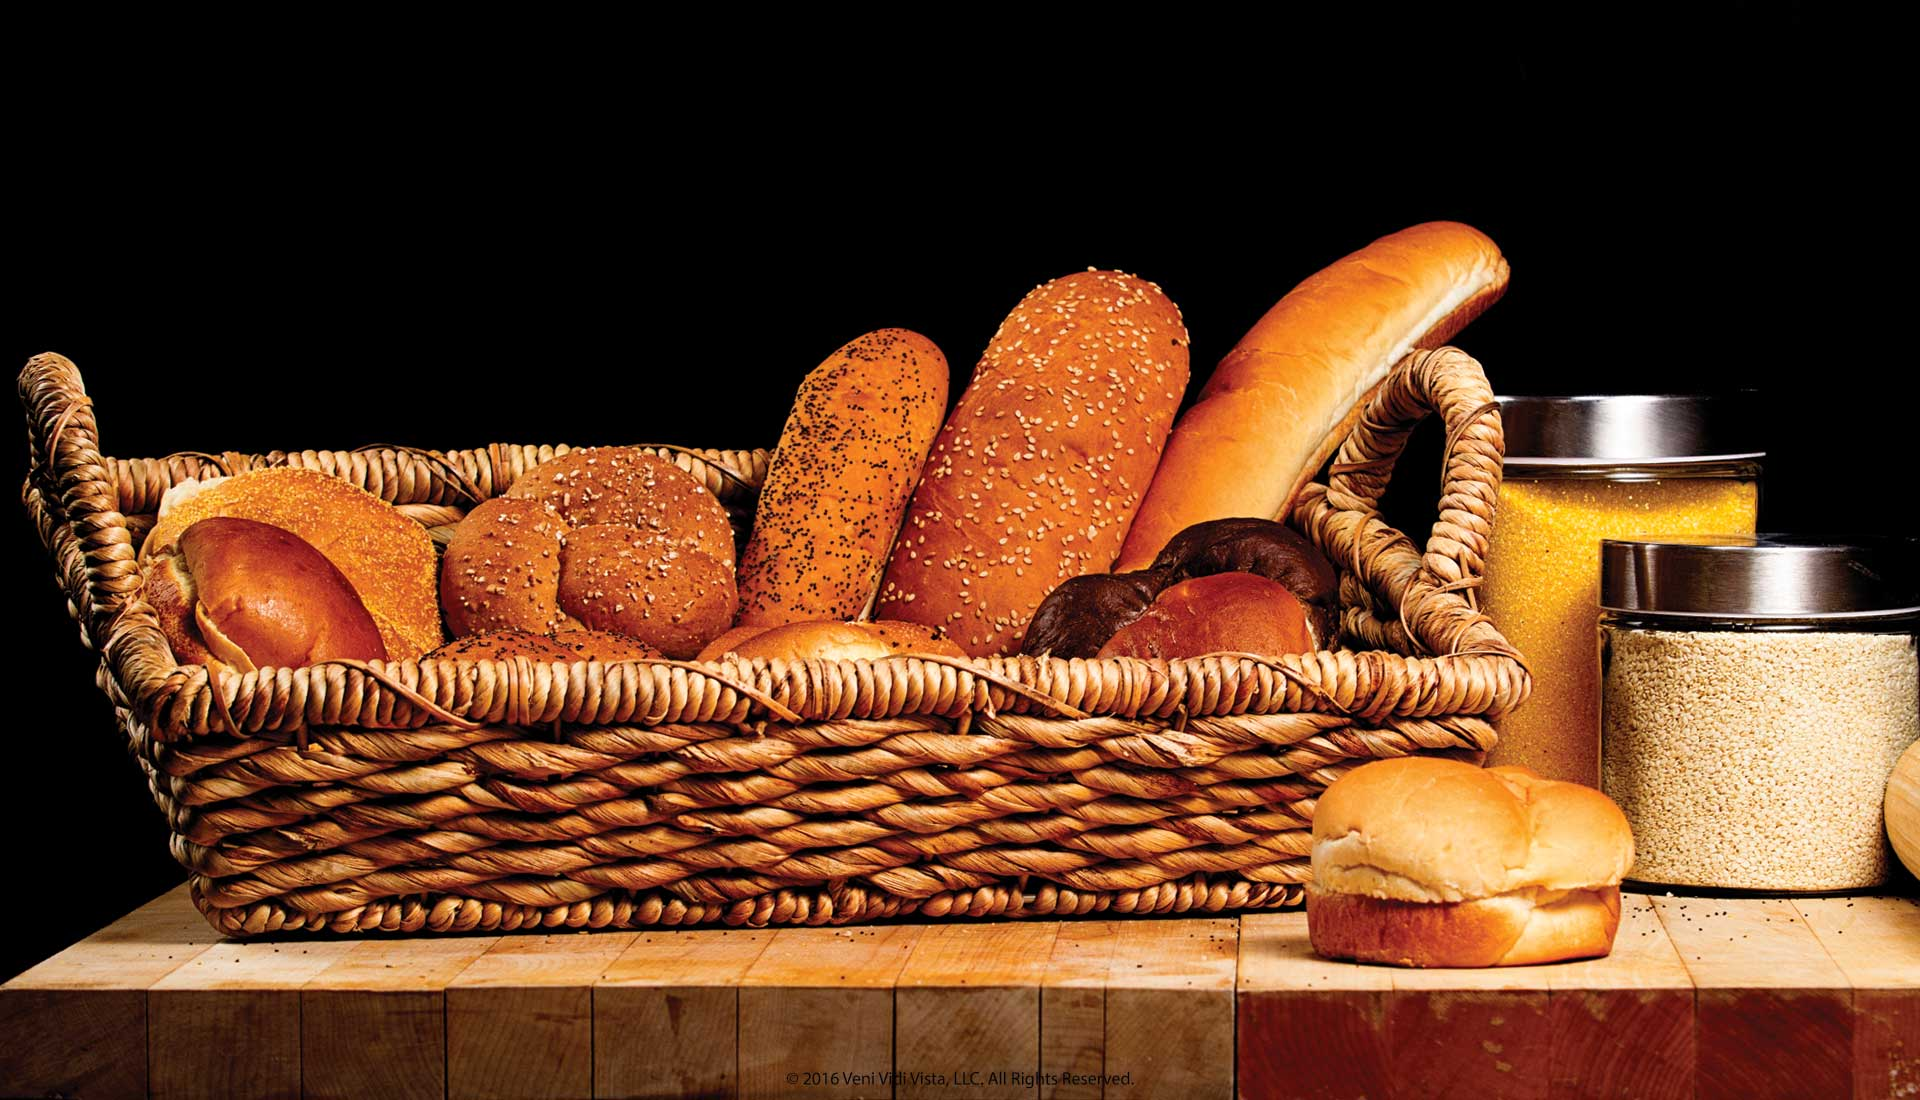 Food Bread Product Photography Basket